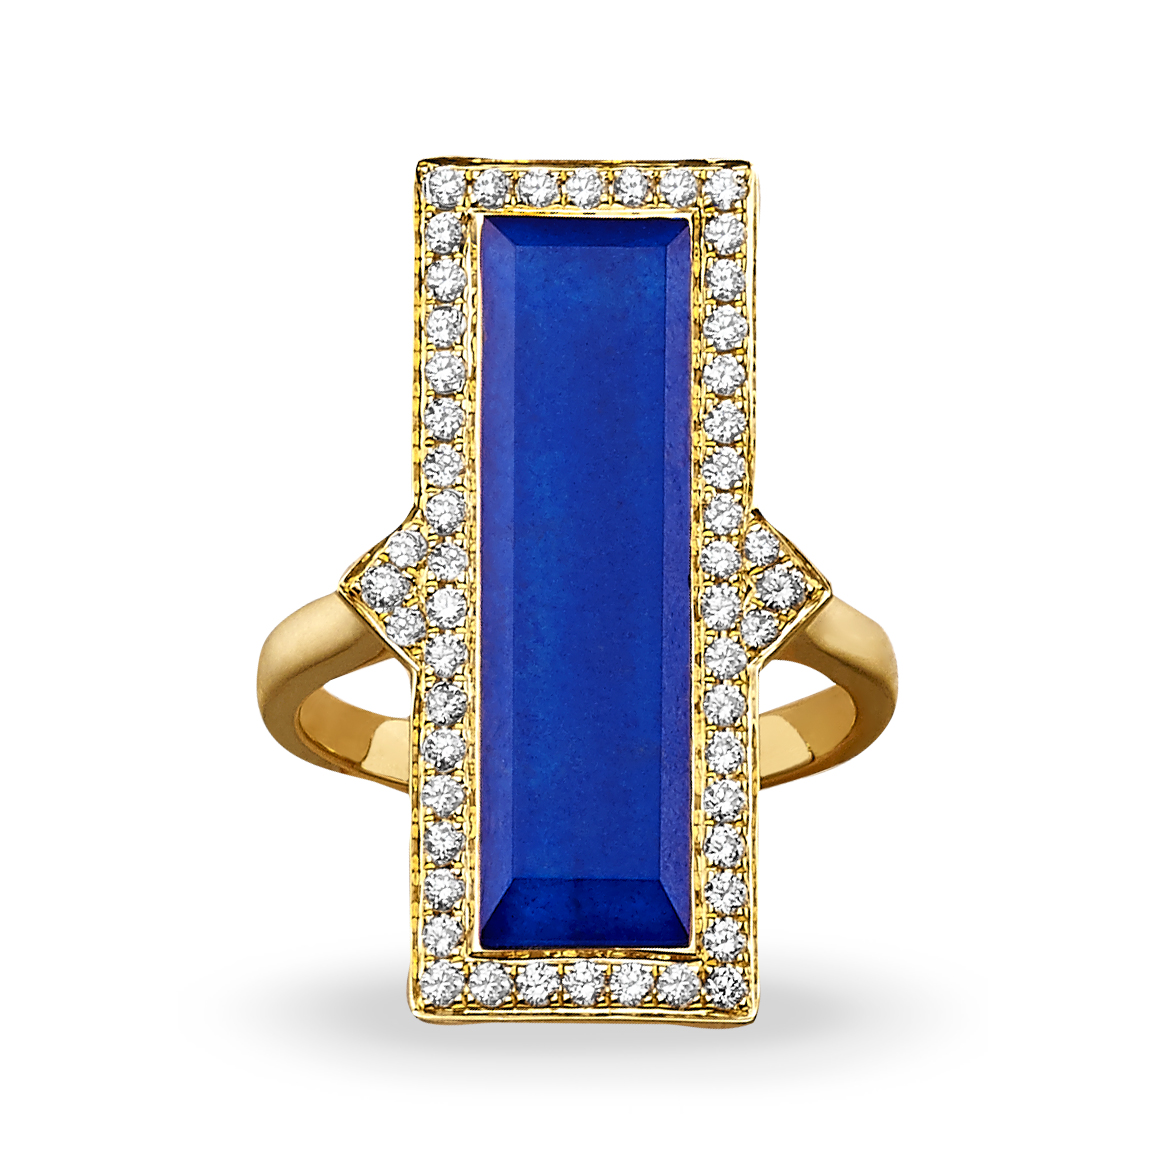 18K Yellow Gold Lapis Lazuli Fashion Ring by Dove